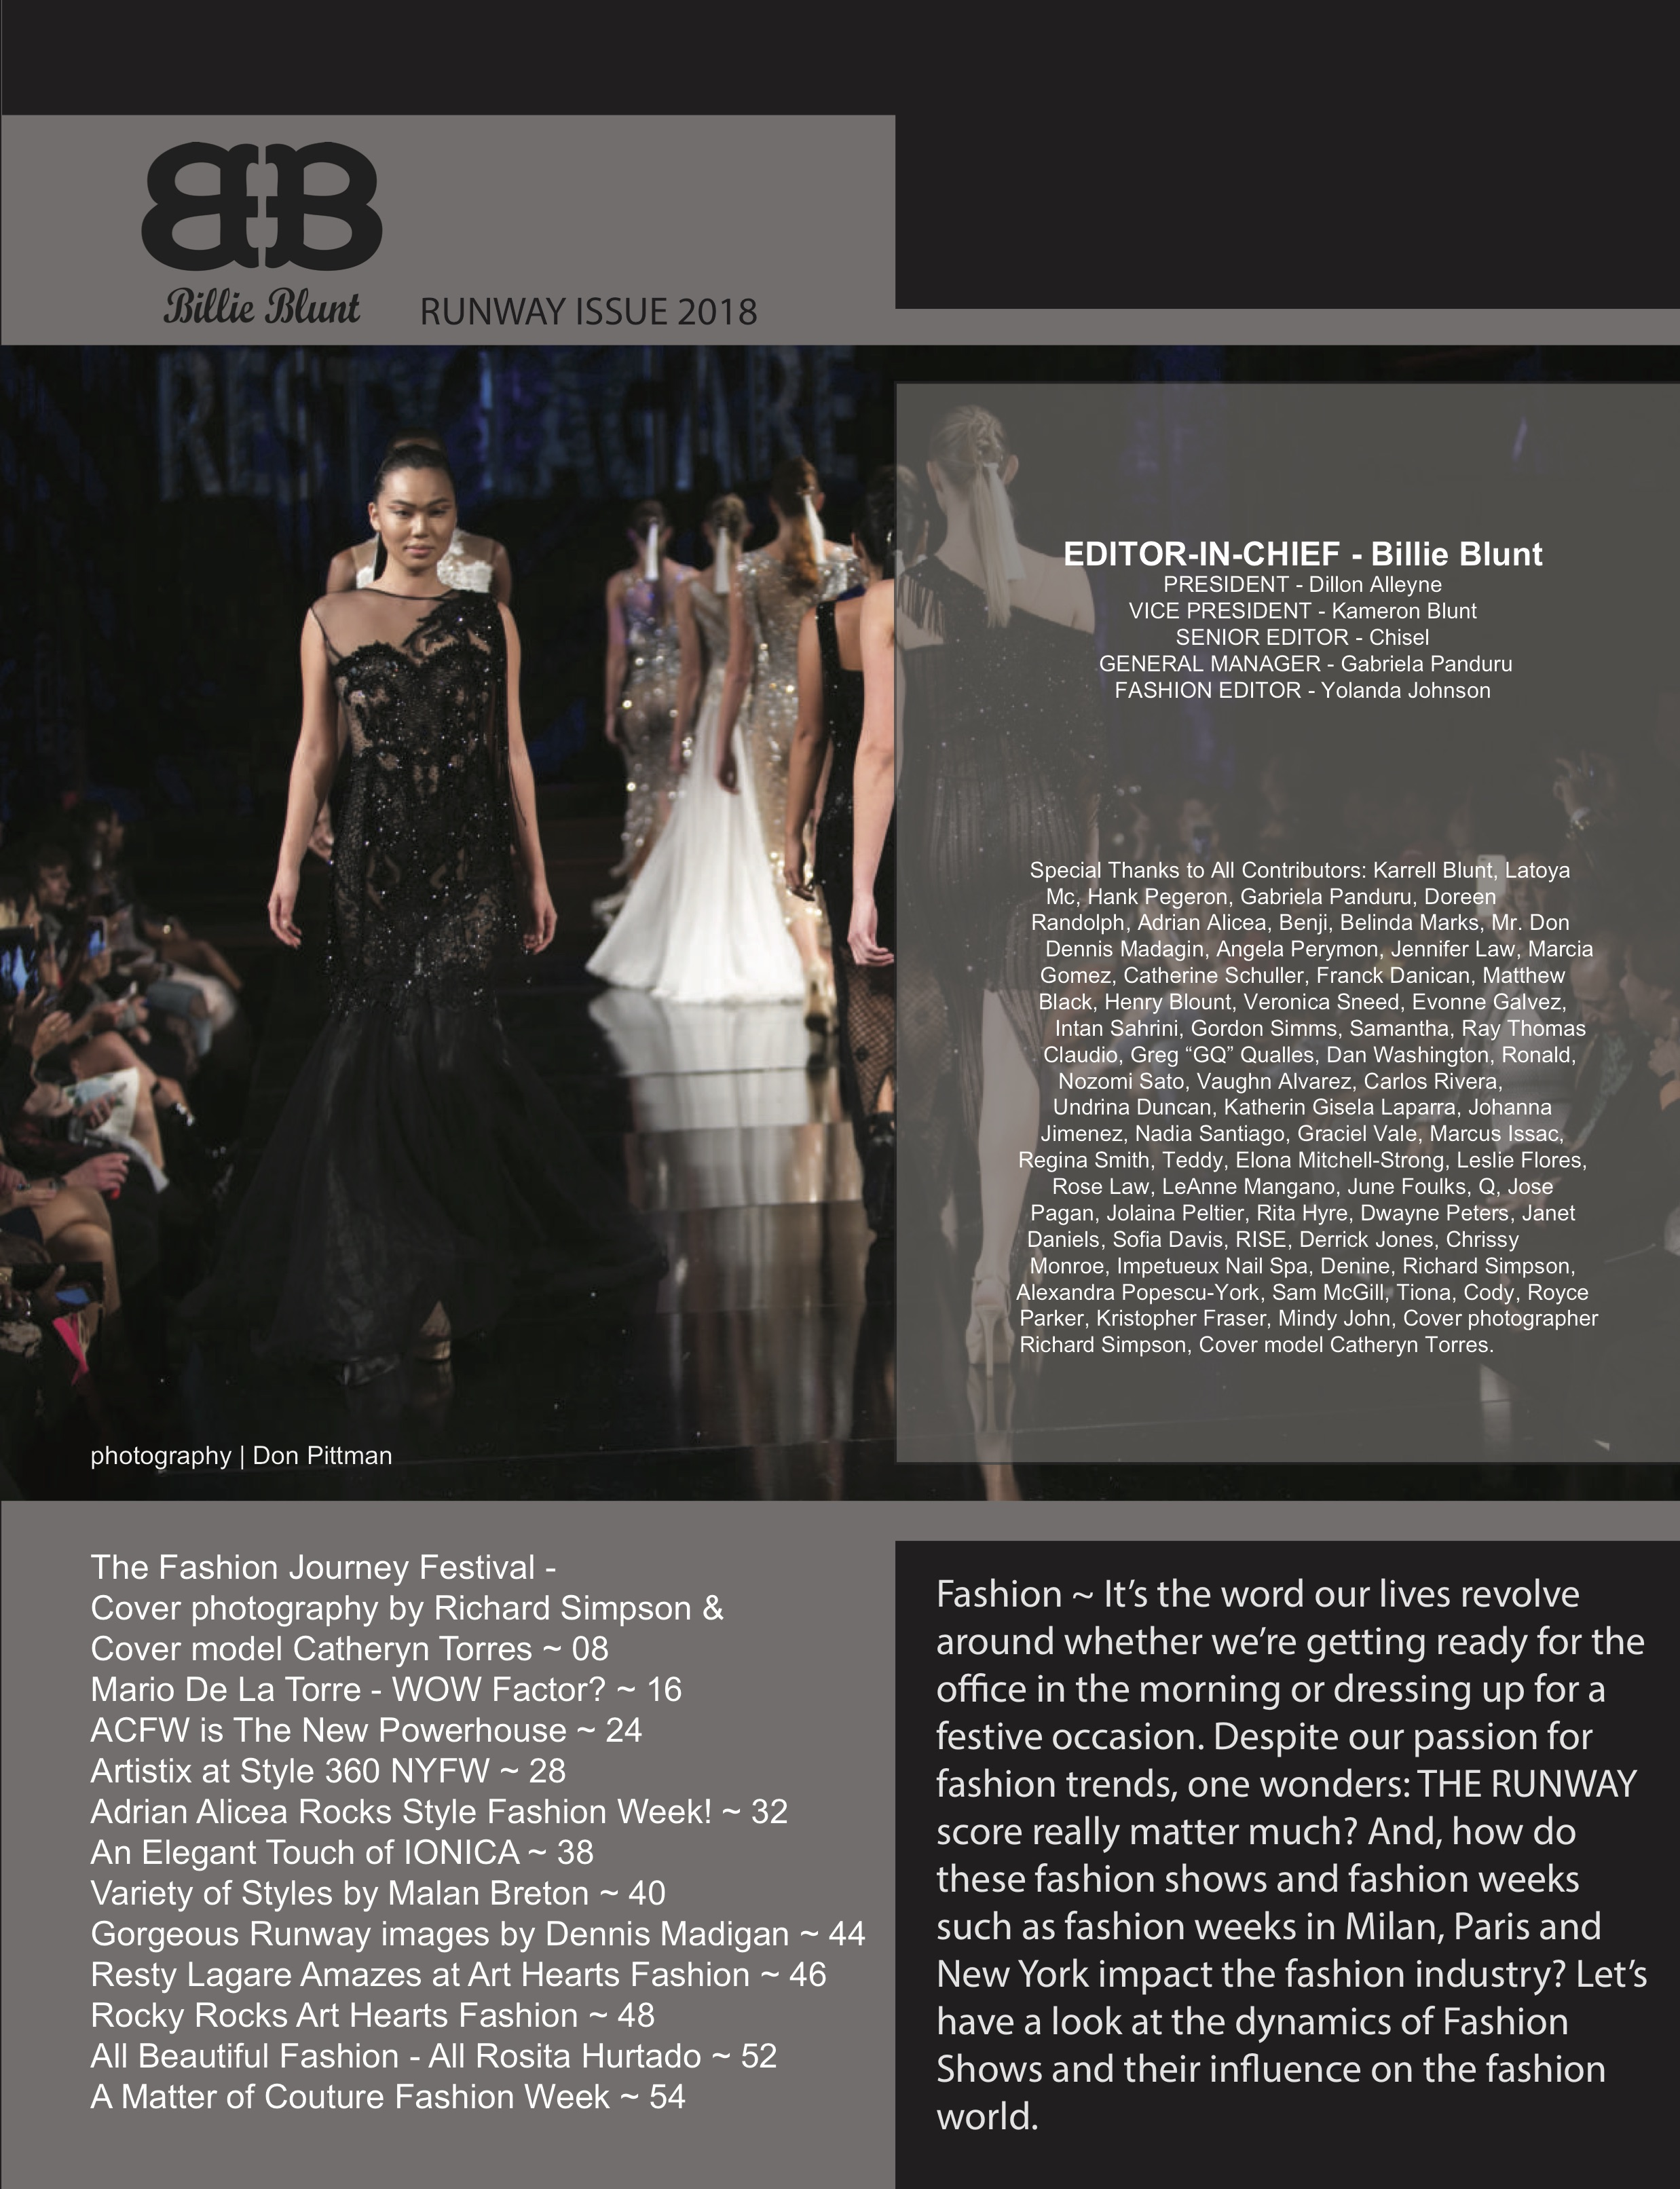 BB MAGAZINE RUNWAY ISSUE vJOURNEY (dragged) 3